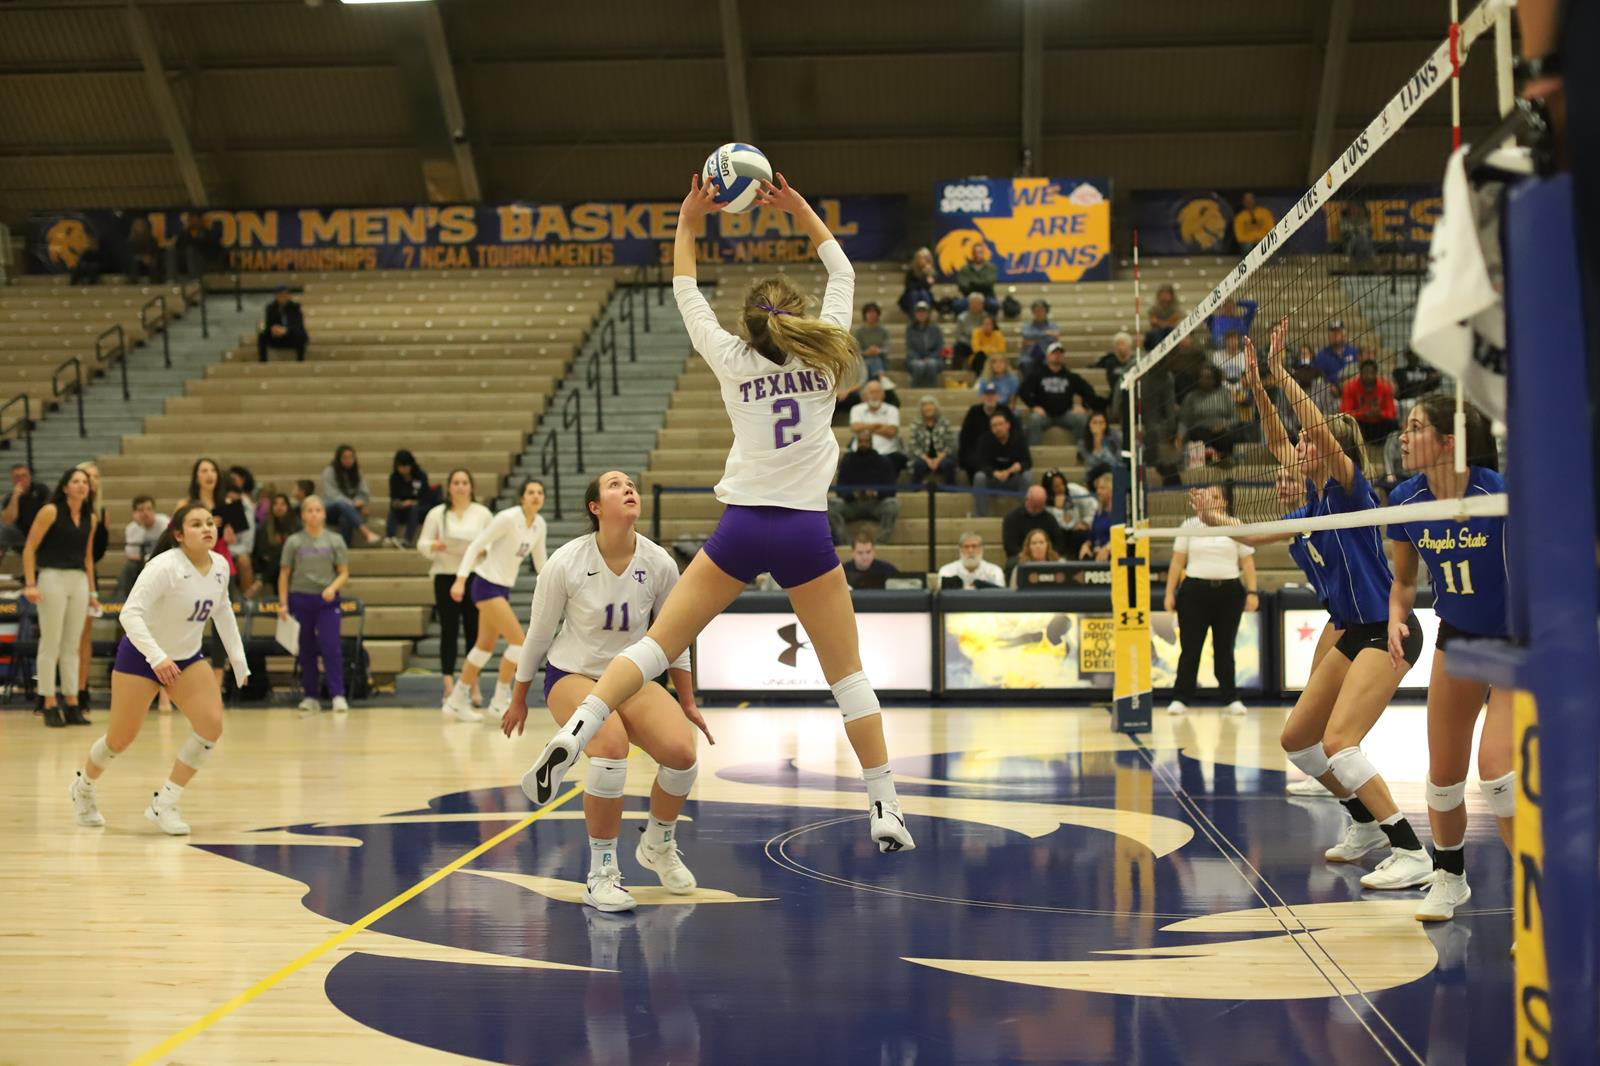 Volleyball Match Day Ncaa South Central Regional Tournament Tarleton State University Athletics